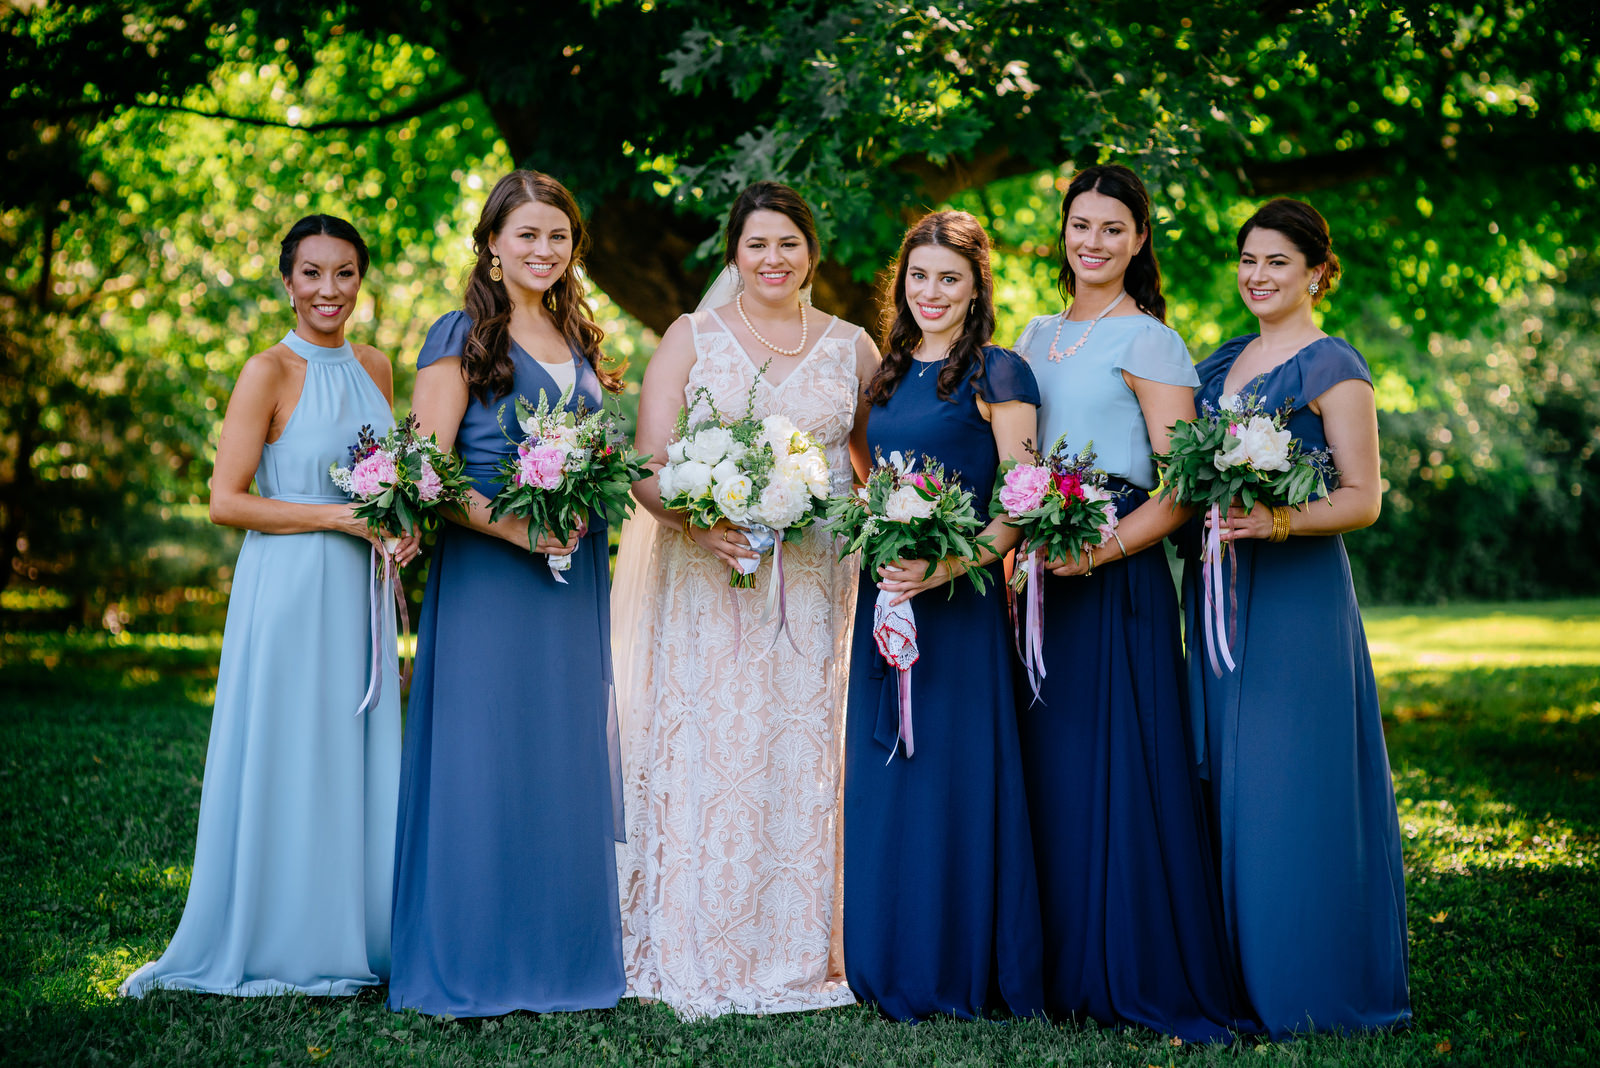 bridesmaids lexington ky wedding